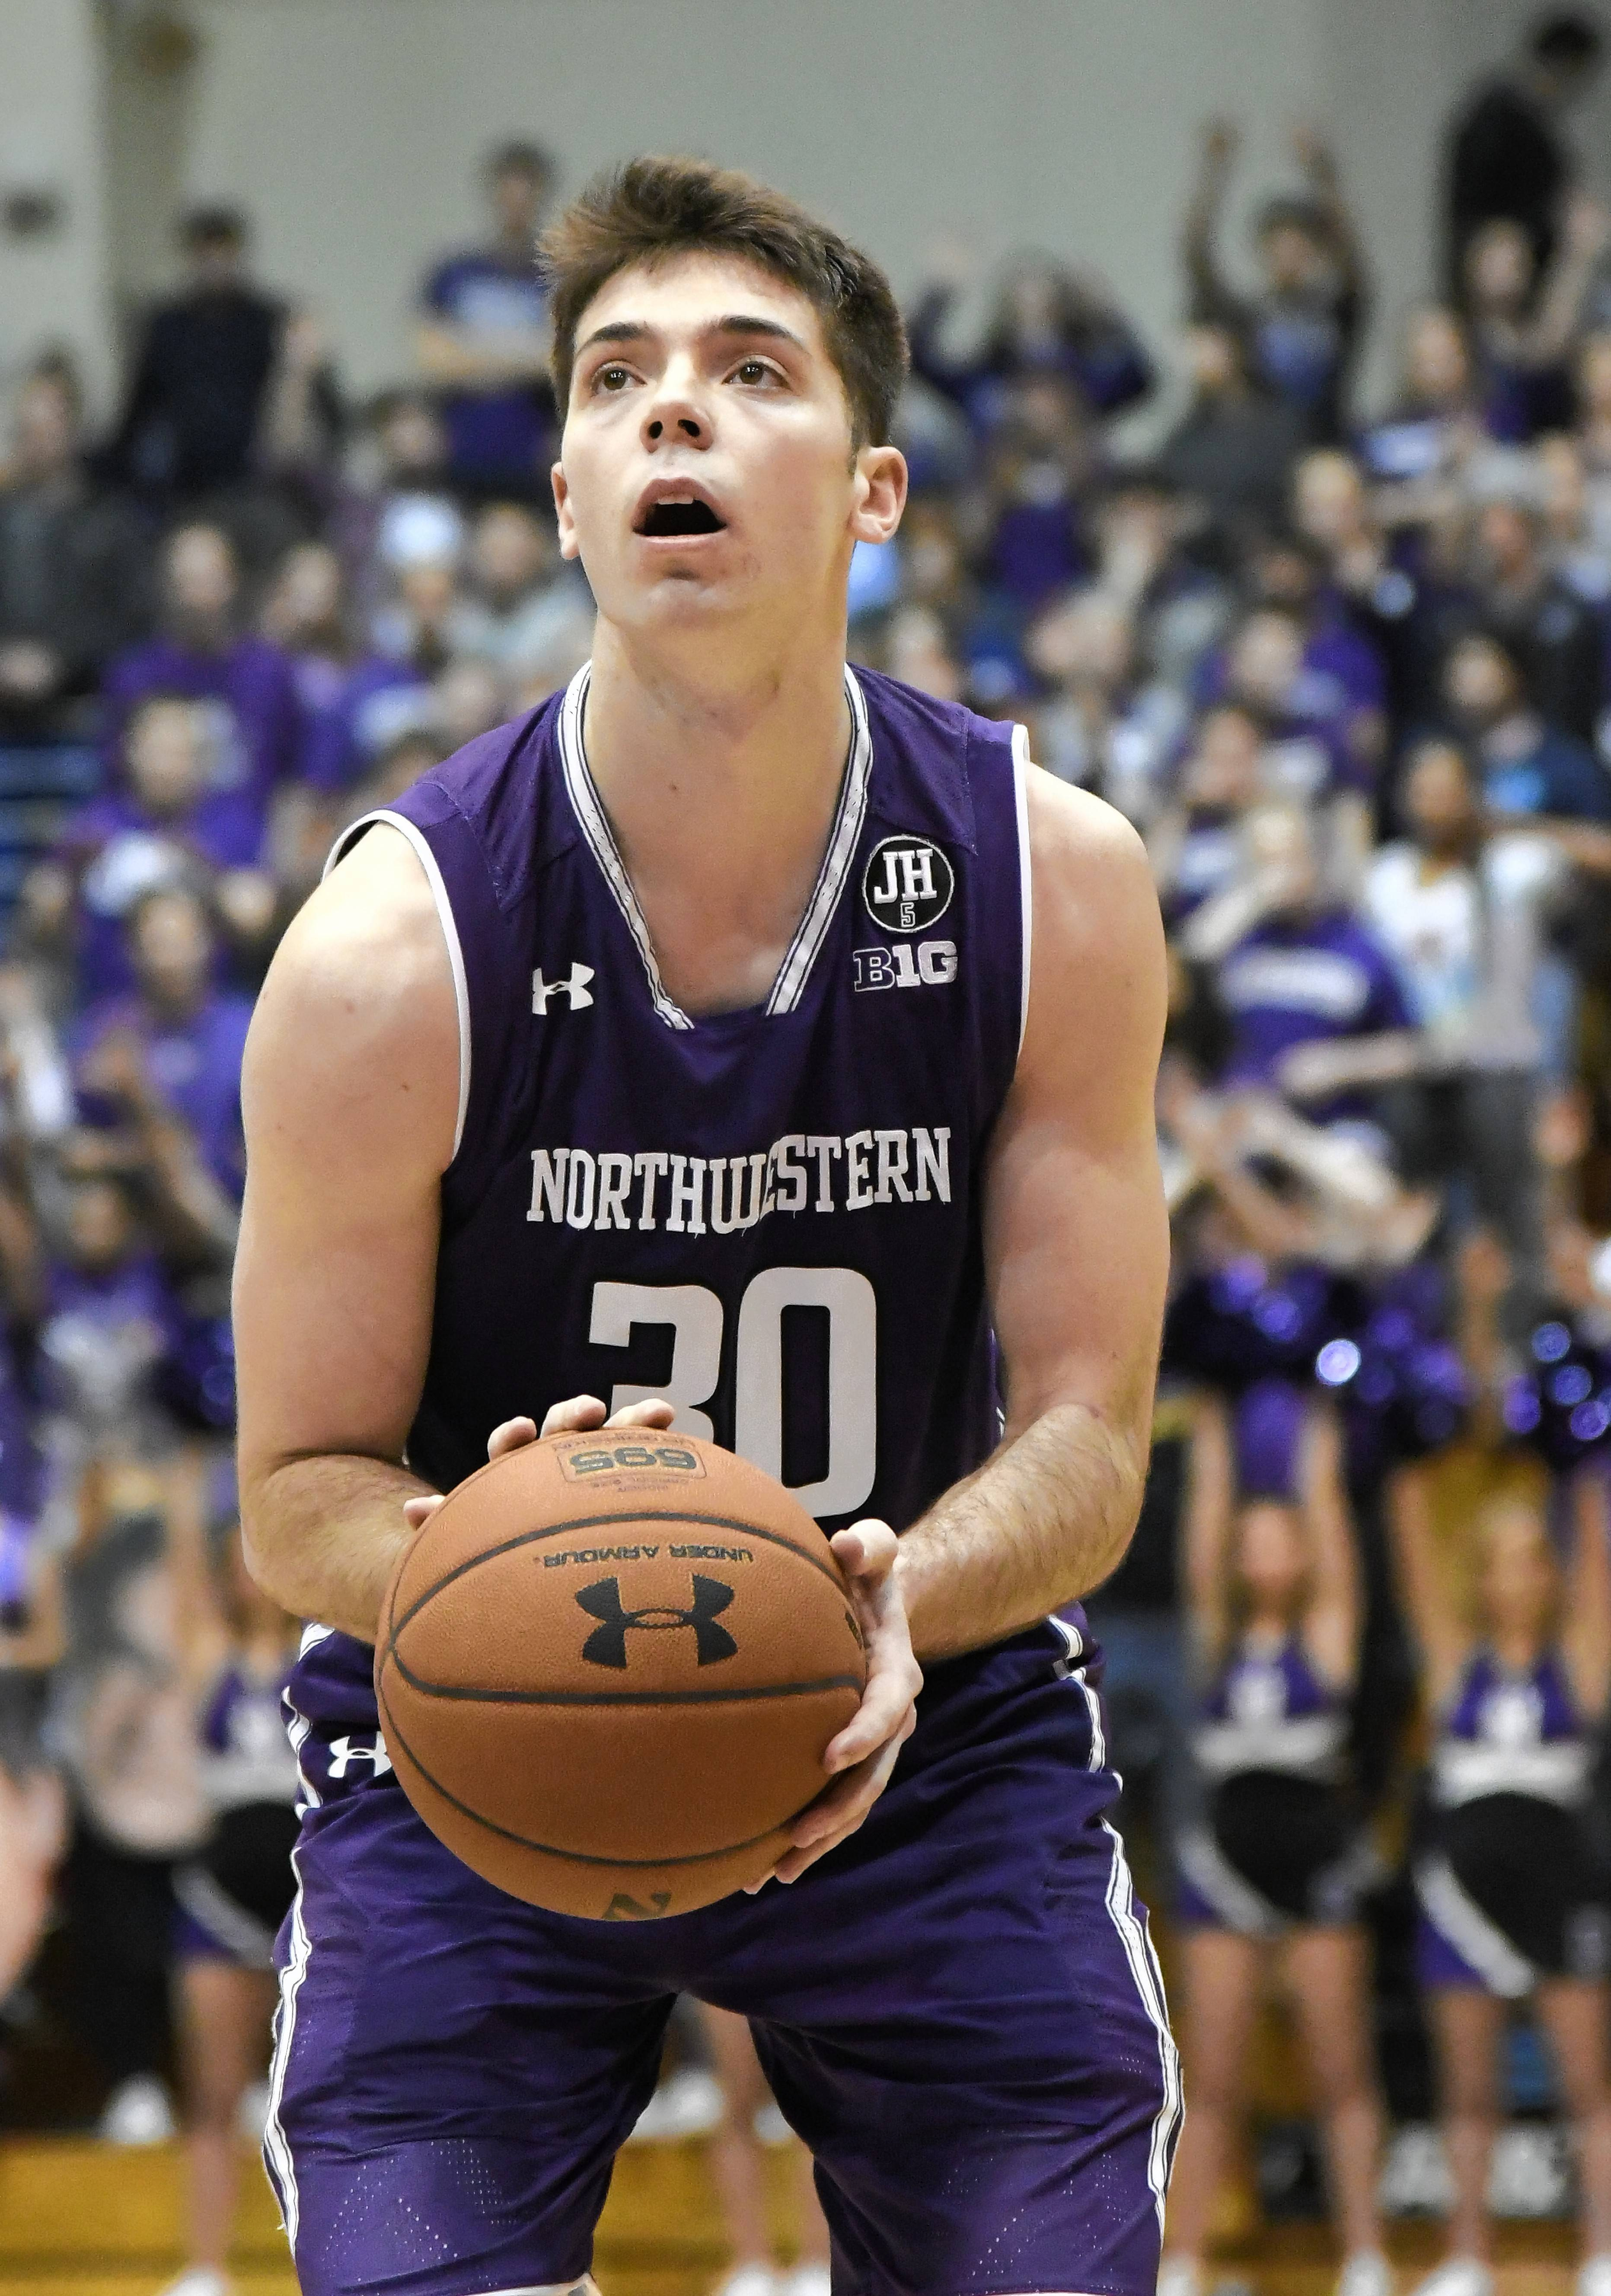 Northwestern guard Bryant McIntosh (30) shoots free throws against Illinois during the second half of an NCAA college basketball game Tuesday, Feb. 7, 2017, in Evanston, Ill. Illinois won 68-61. (AP Photo/David Banks)